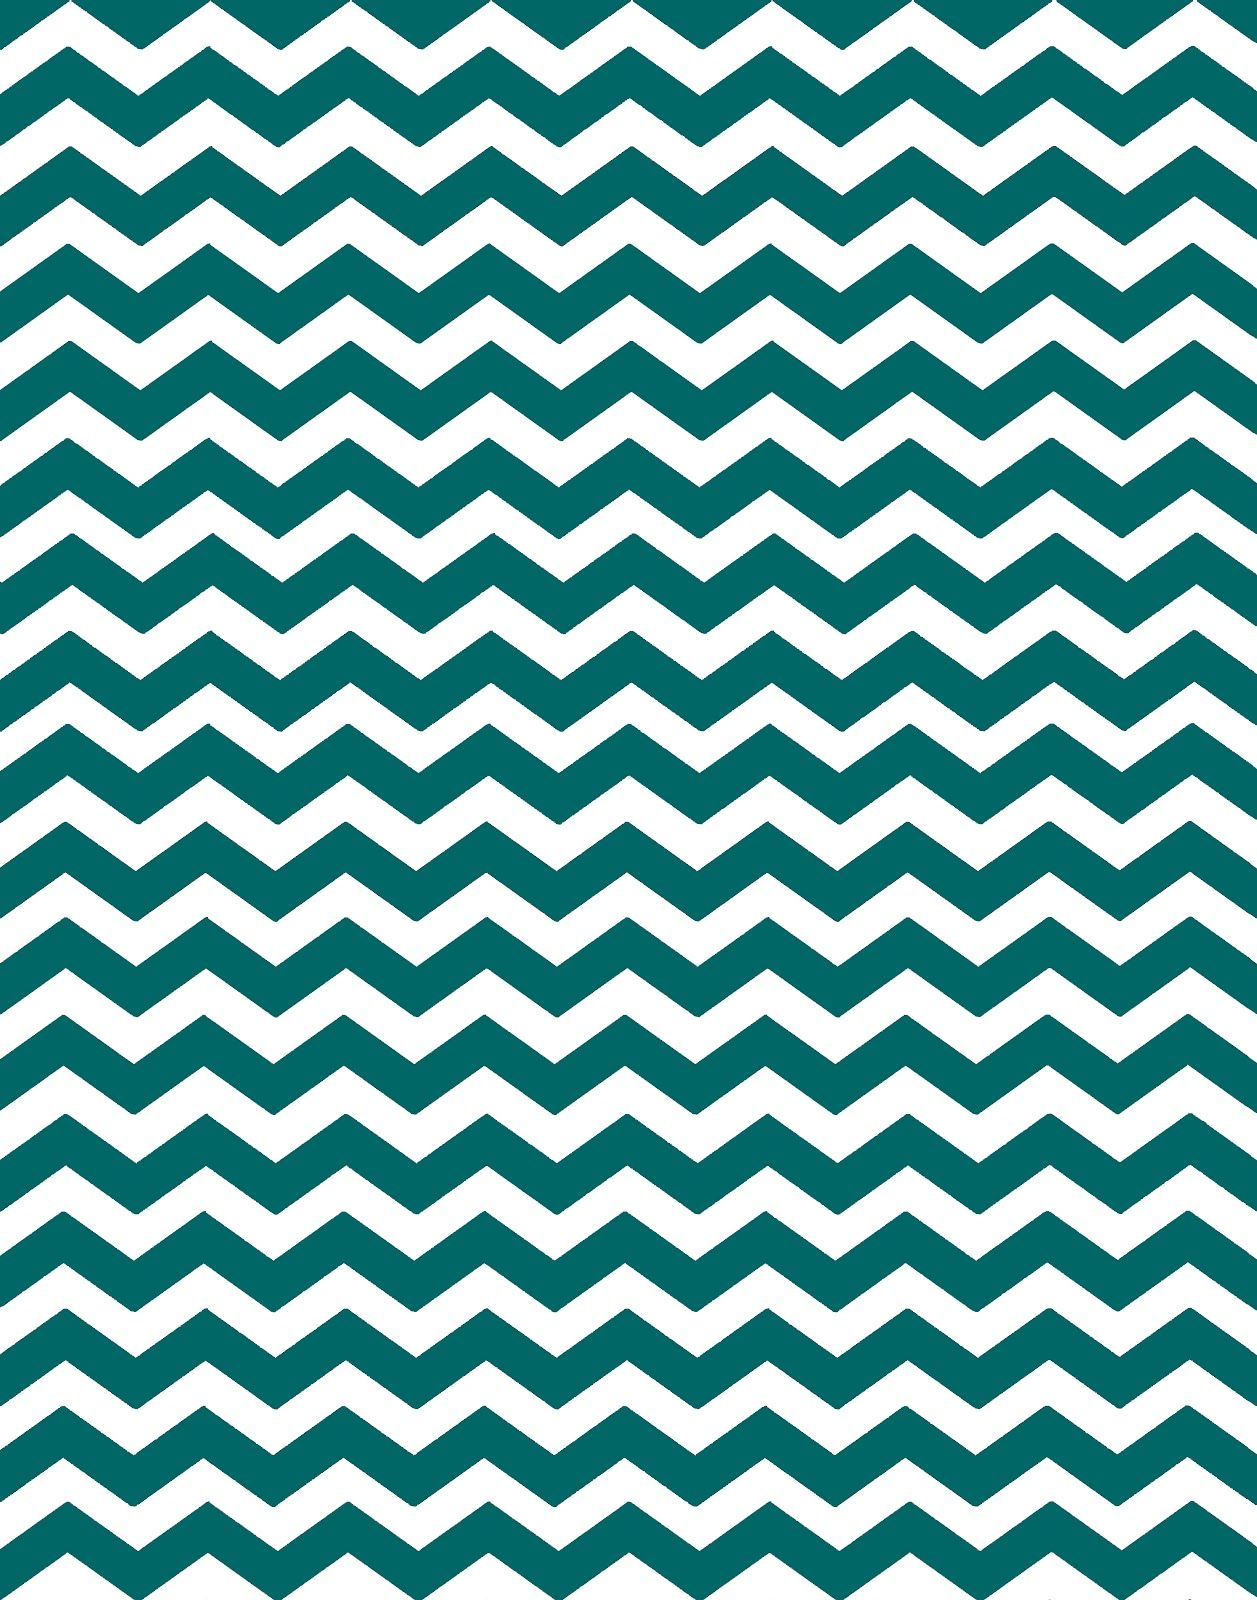 Doodle craft 16 new colors chevron background patterns for Teal chevron wallpaper